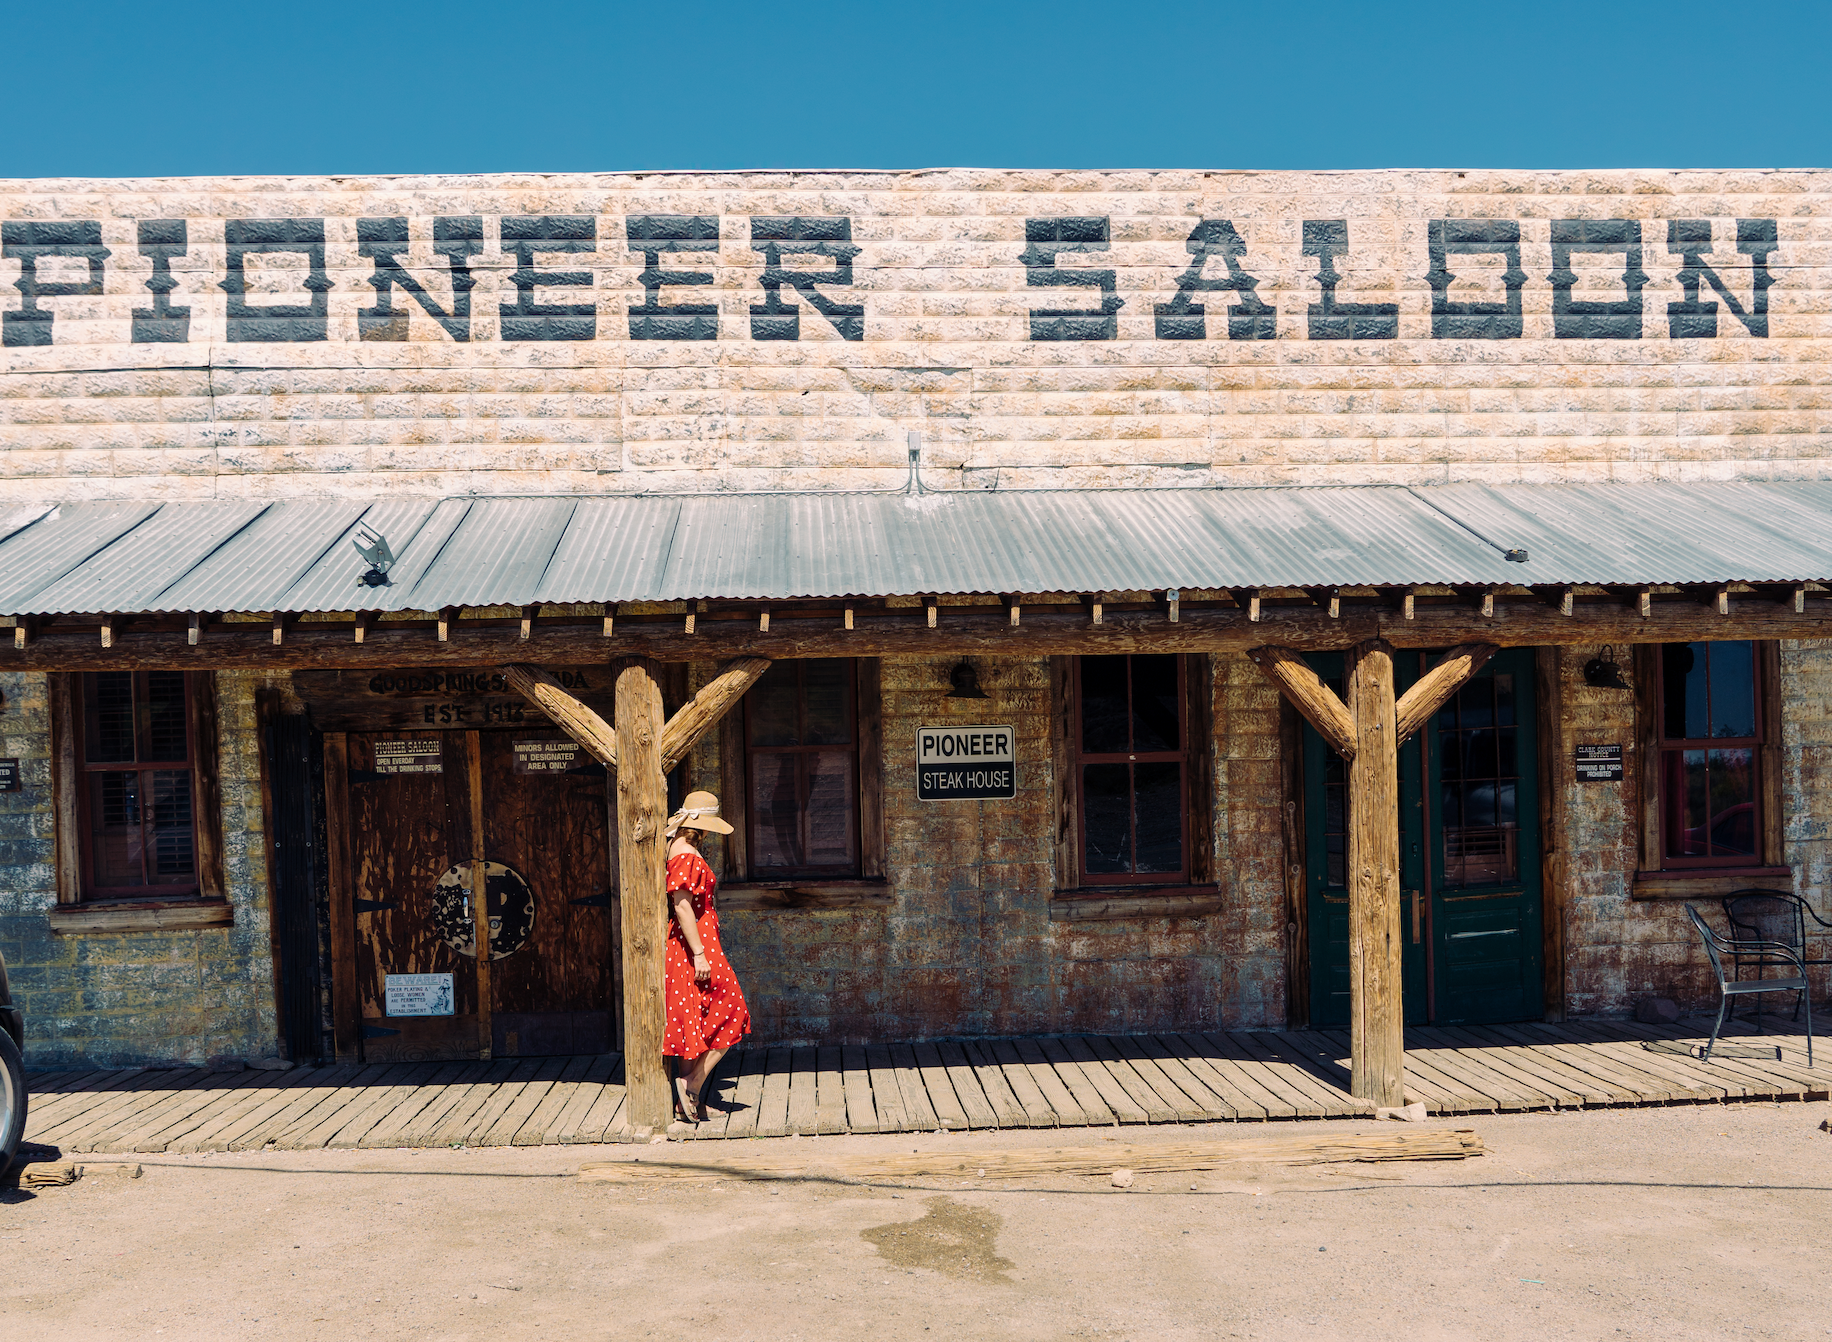 The Pioneer Saloon has been around for over 100 years. It's a perfect day trip from Las Vegas!